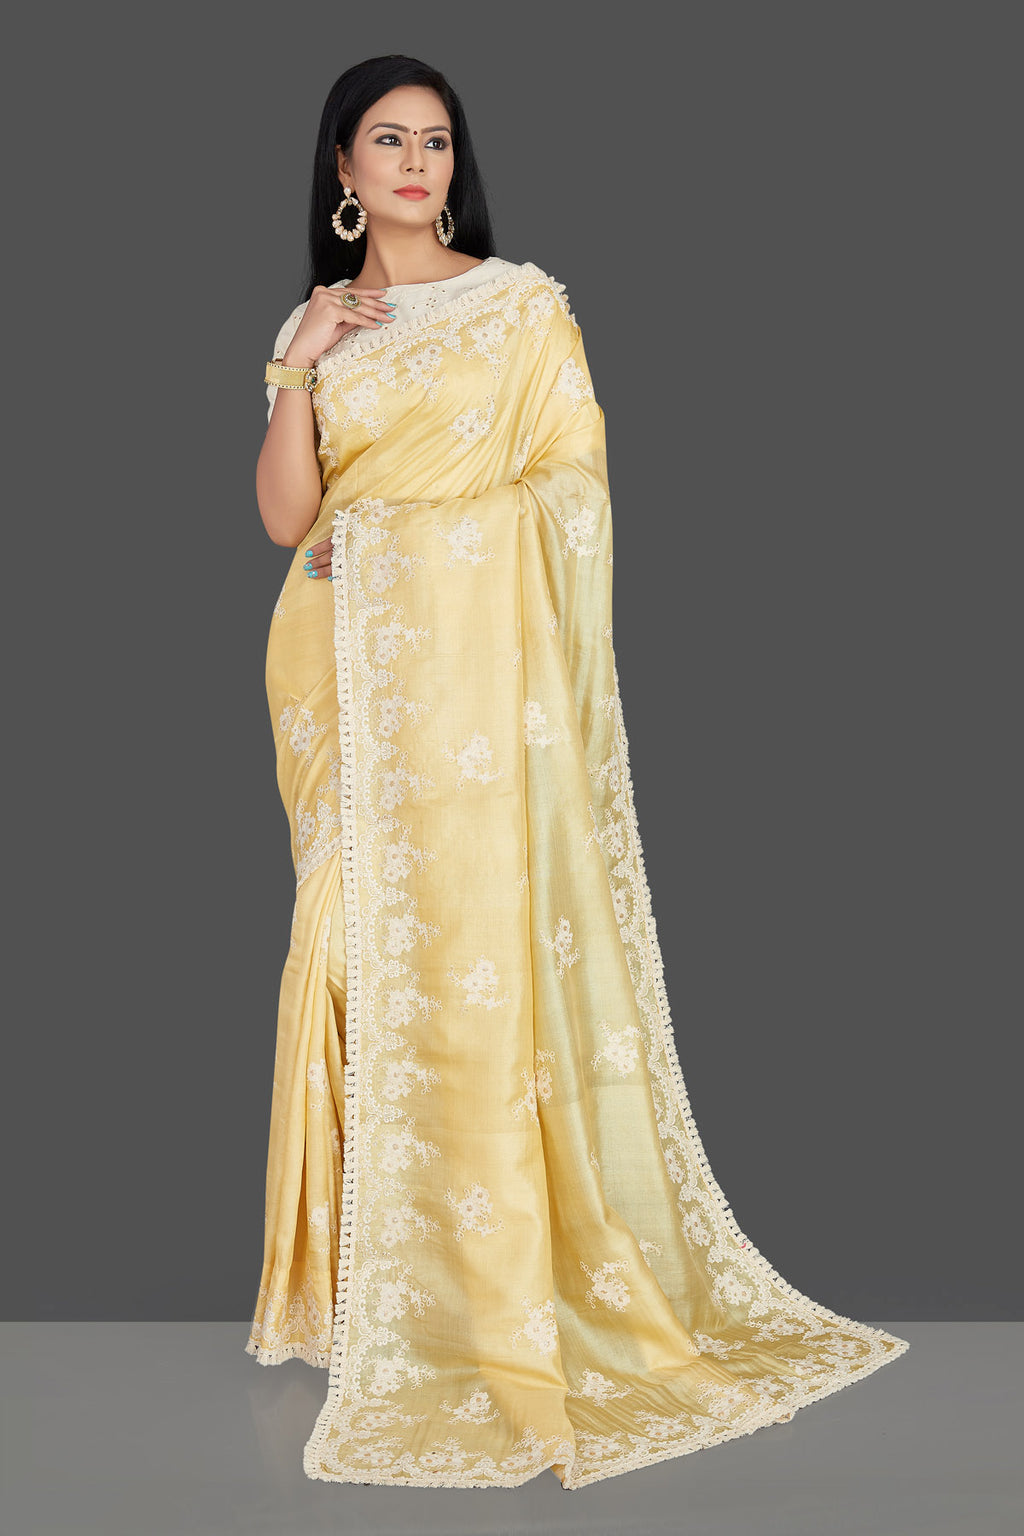 Buy gorgeous lemon yellow embroidered tassar silk sari online in USA with cream embroidered blouse. Make your ethnic wardrobe rich with timeless handwoven sarees, tissue sarees, silk sarees, tussar saris from Pure Elegance Indian clothing store in USA. Find all the designer sarees for special occasions under one roof!-full view